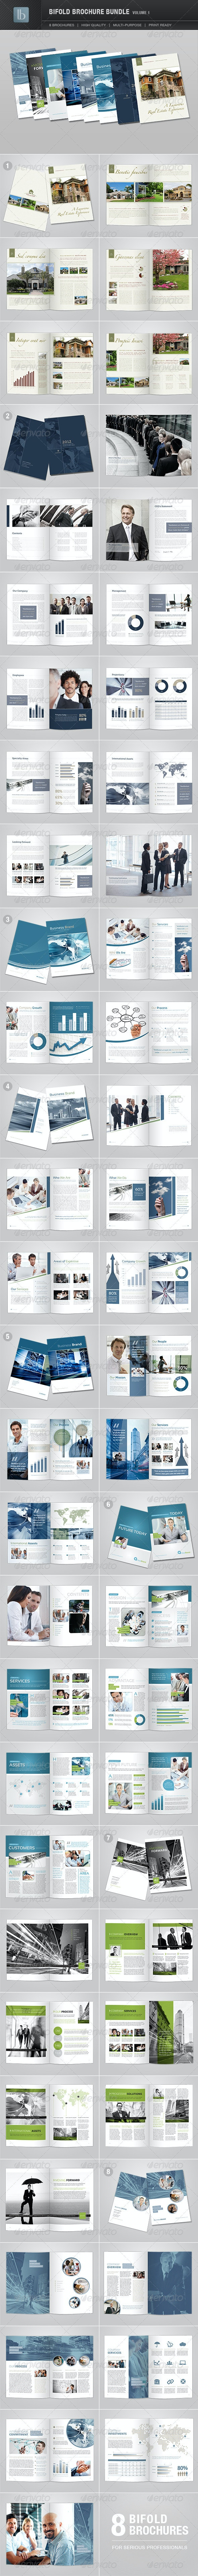 Bifold Brochure Bundle | Volume 1 - Brochures Print Templates